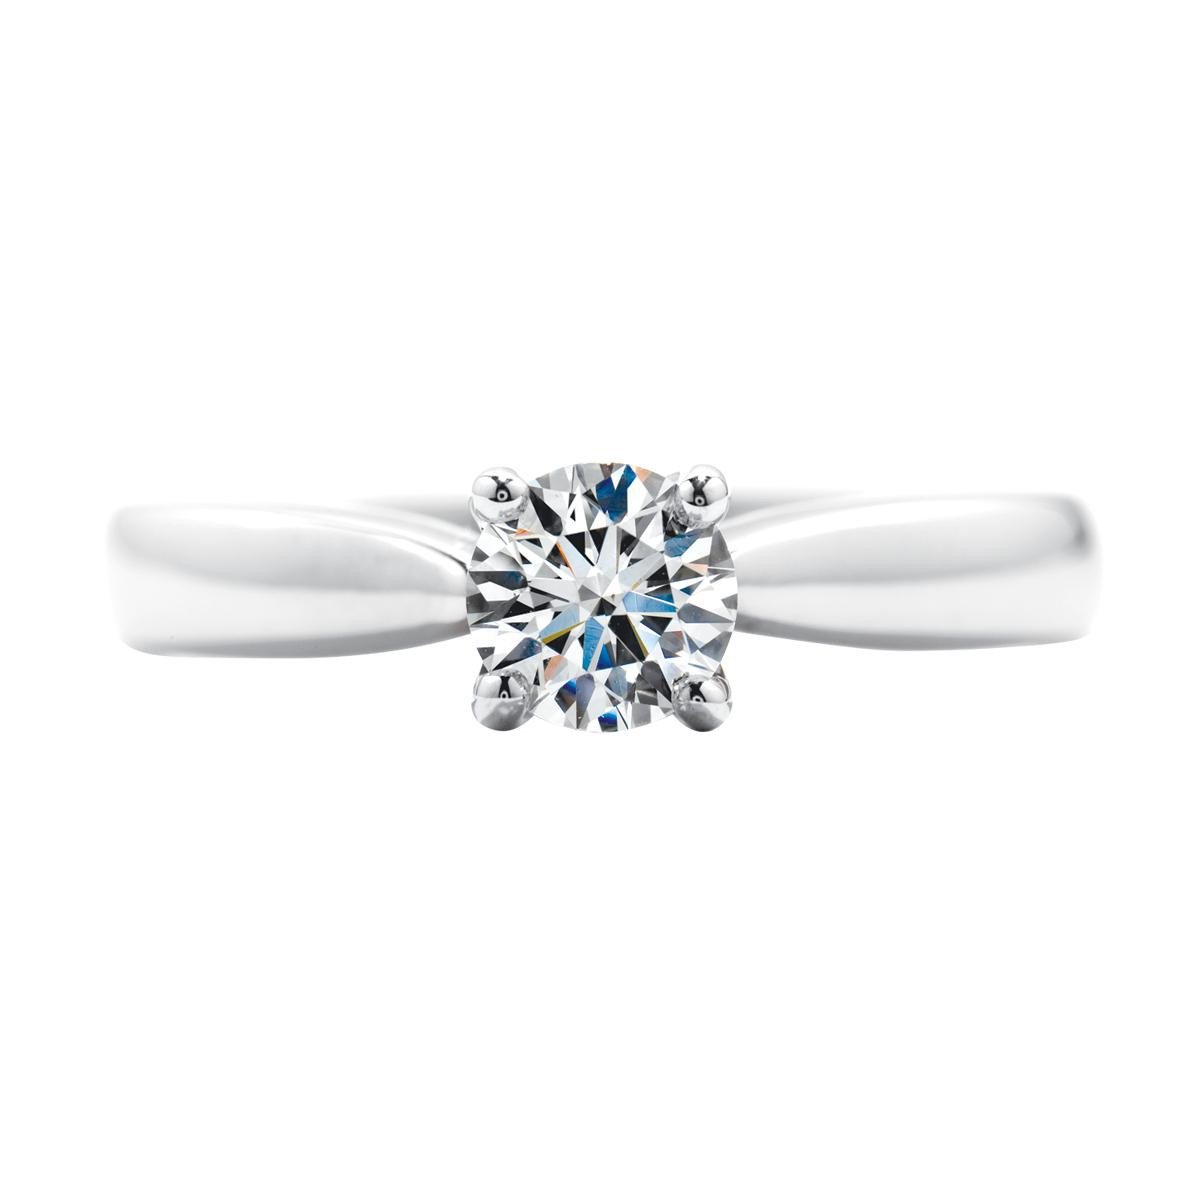 New Hearts On Fire 174 1 59 Ct Diamond Serenity Solitaire Engagement Ring